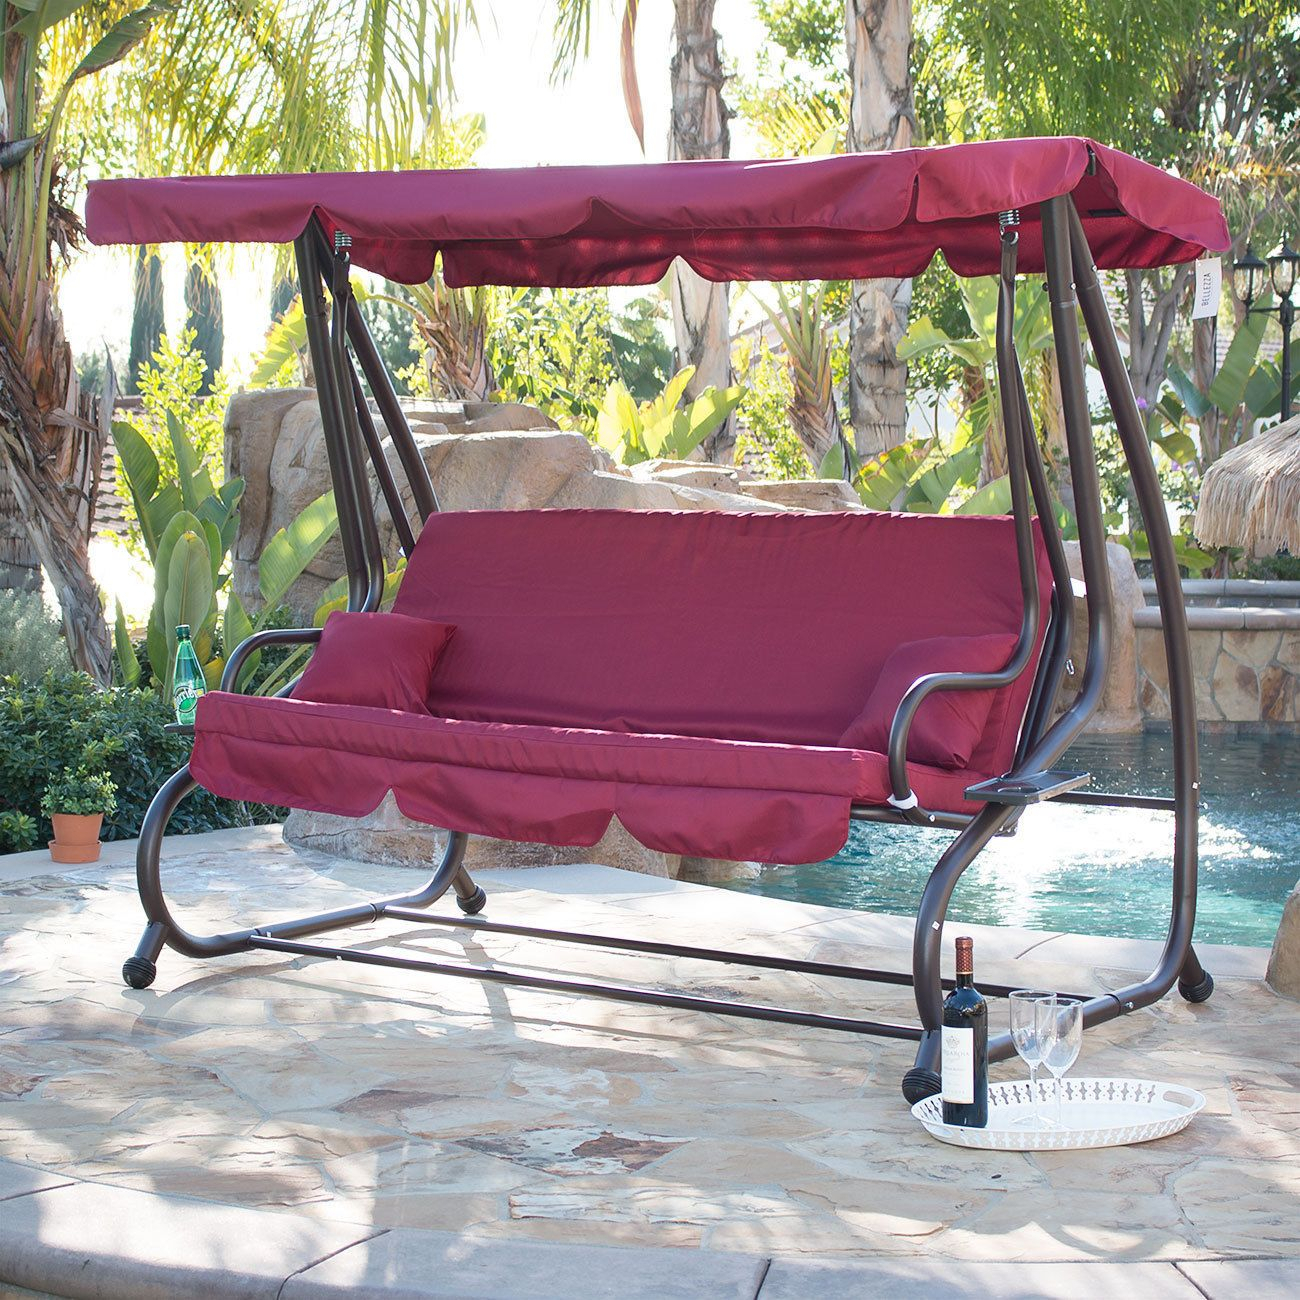 Outdoor Canopy Swing/bed Patio Deck Garden Porch Seat Regarding Outdoor Canopy Hammock Porch Swings With Stand (View 10 of 25)